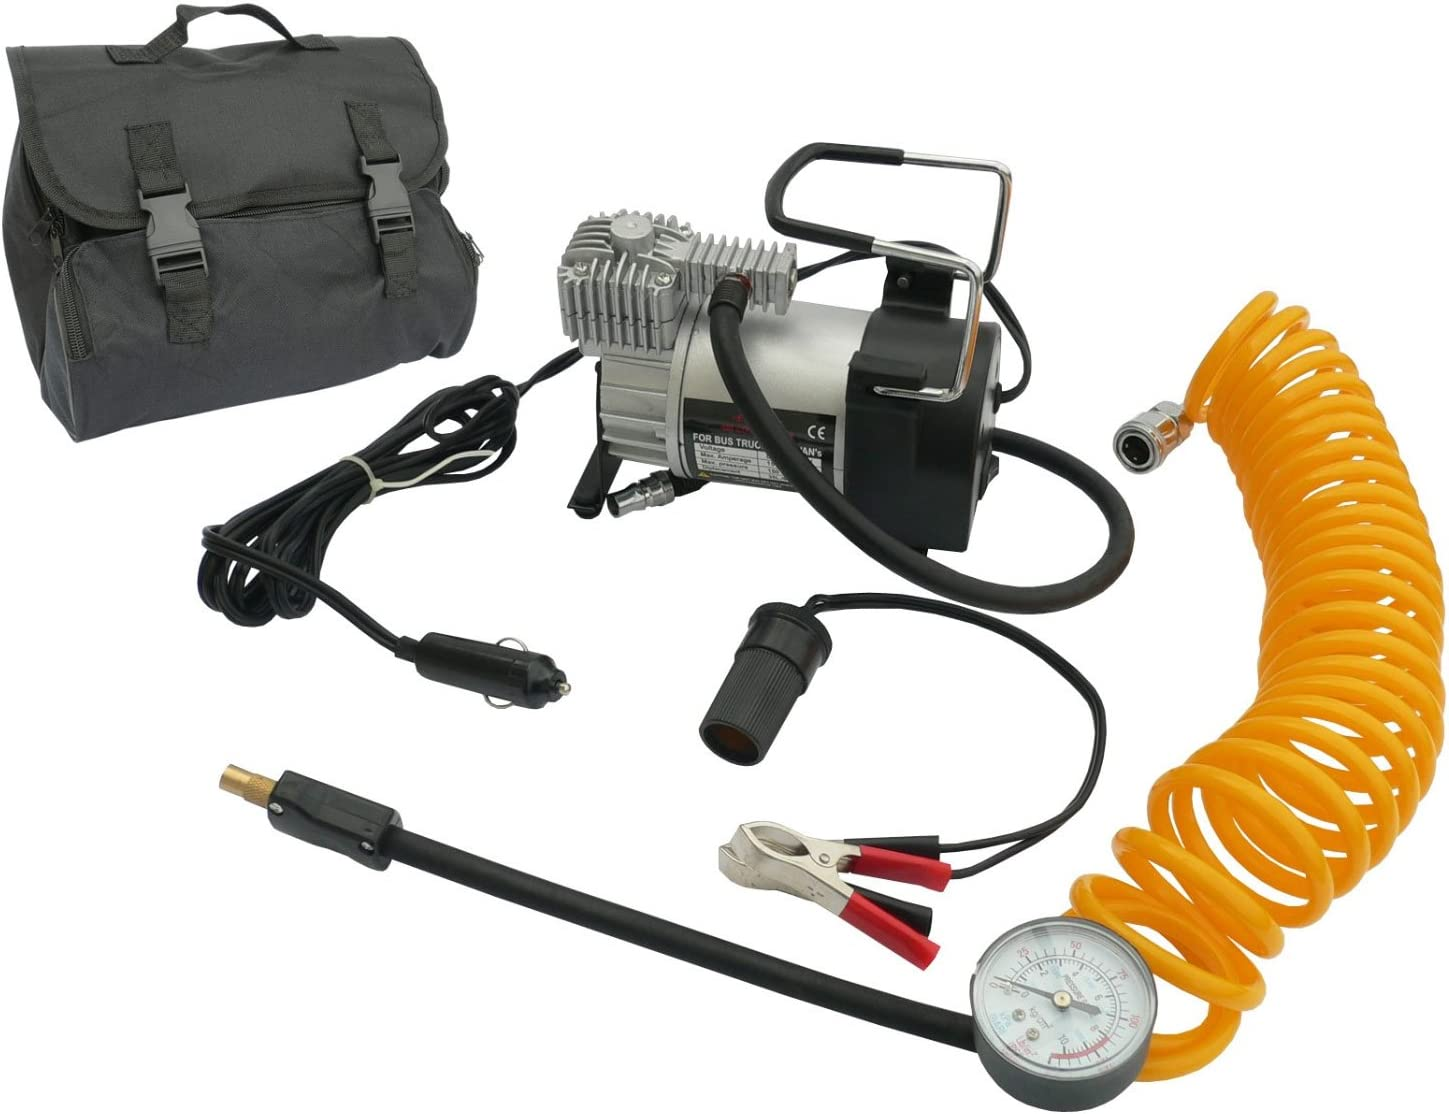 Fifth Gear/® Heavy-Duty Car Tyre Air Compressor Inflator 12V 150psi 3m Power Cord 5m Hose New